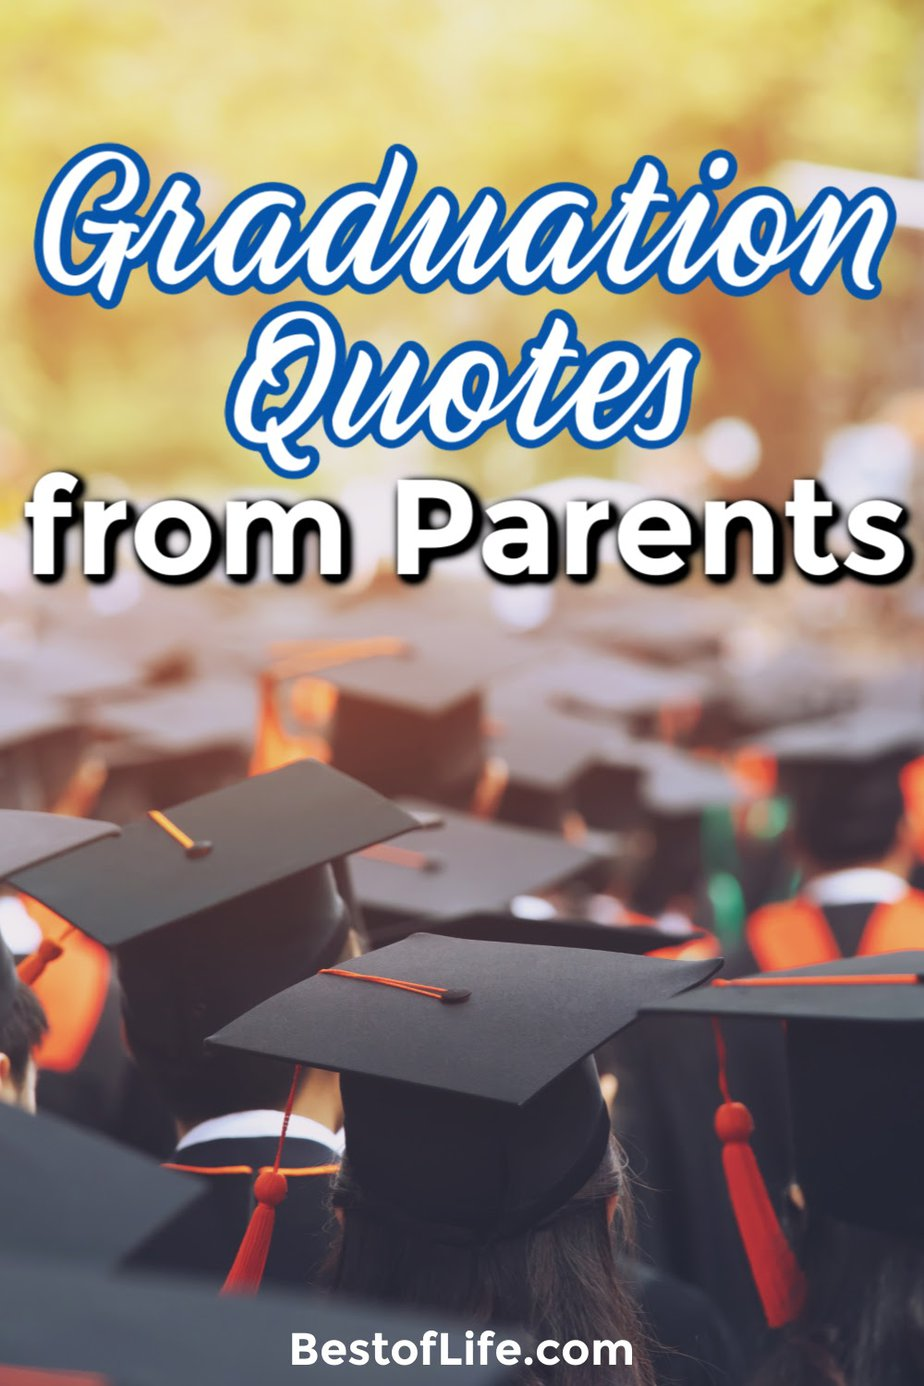 The best graduation quotes from parents can help you express your pride, joy, and love for graduates of any year. Quotes for Graduates | Parenting Tips | Quotes for Parents | Quotes for Son | Quotes for Daughter | Graduation Sayings for Parents #quotes #parents via @thebestoflife